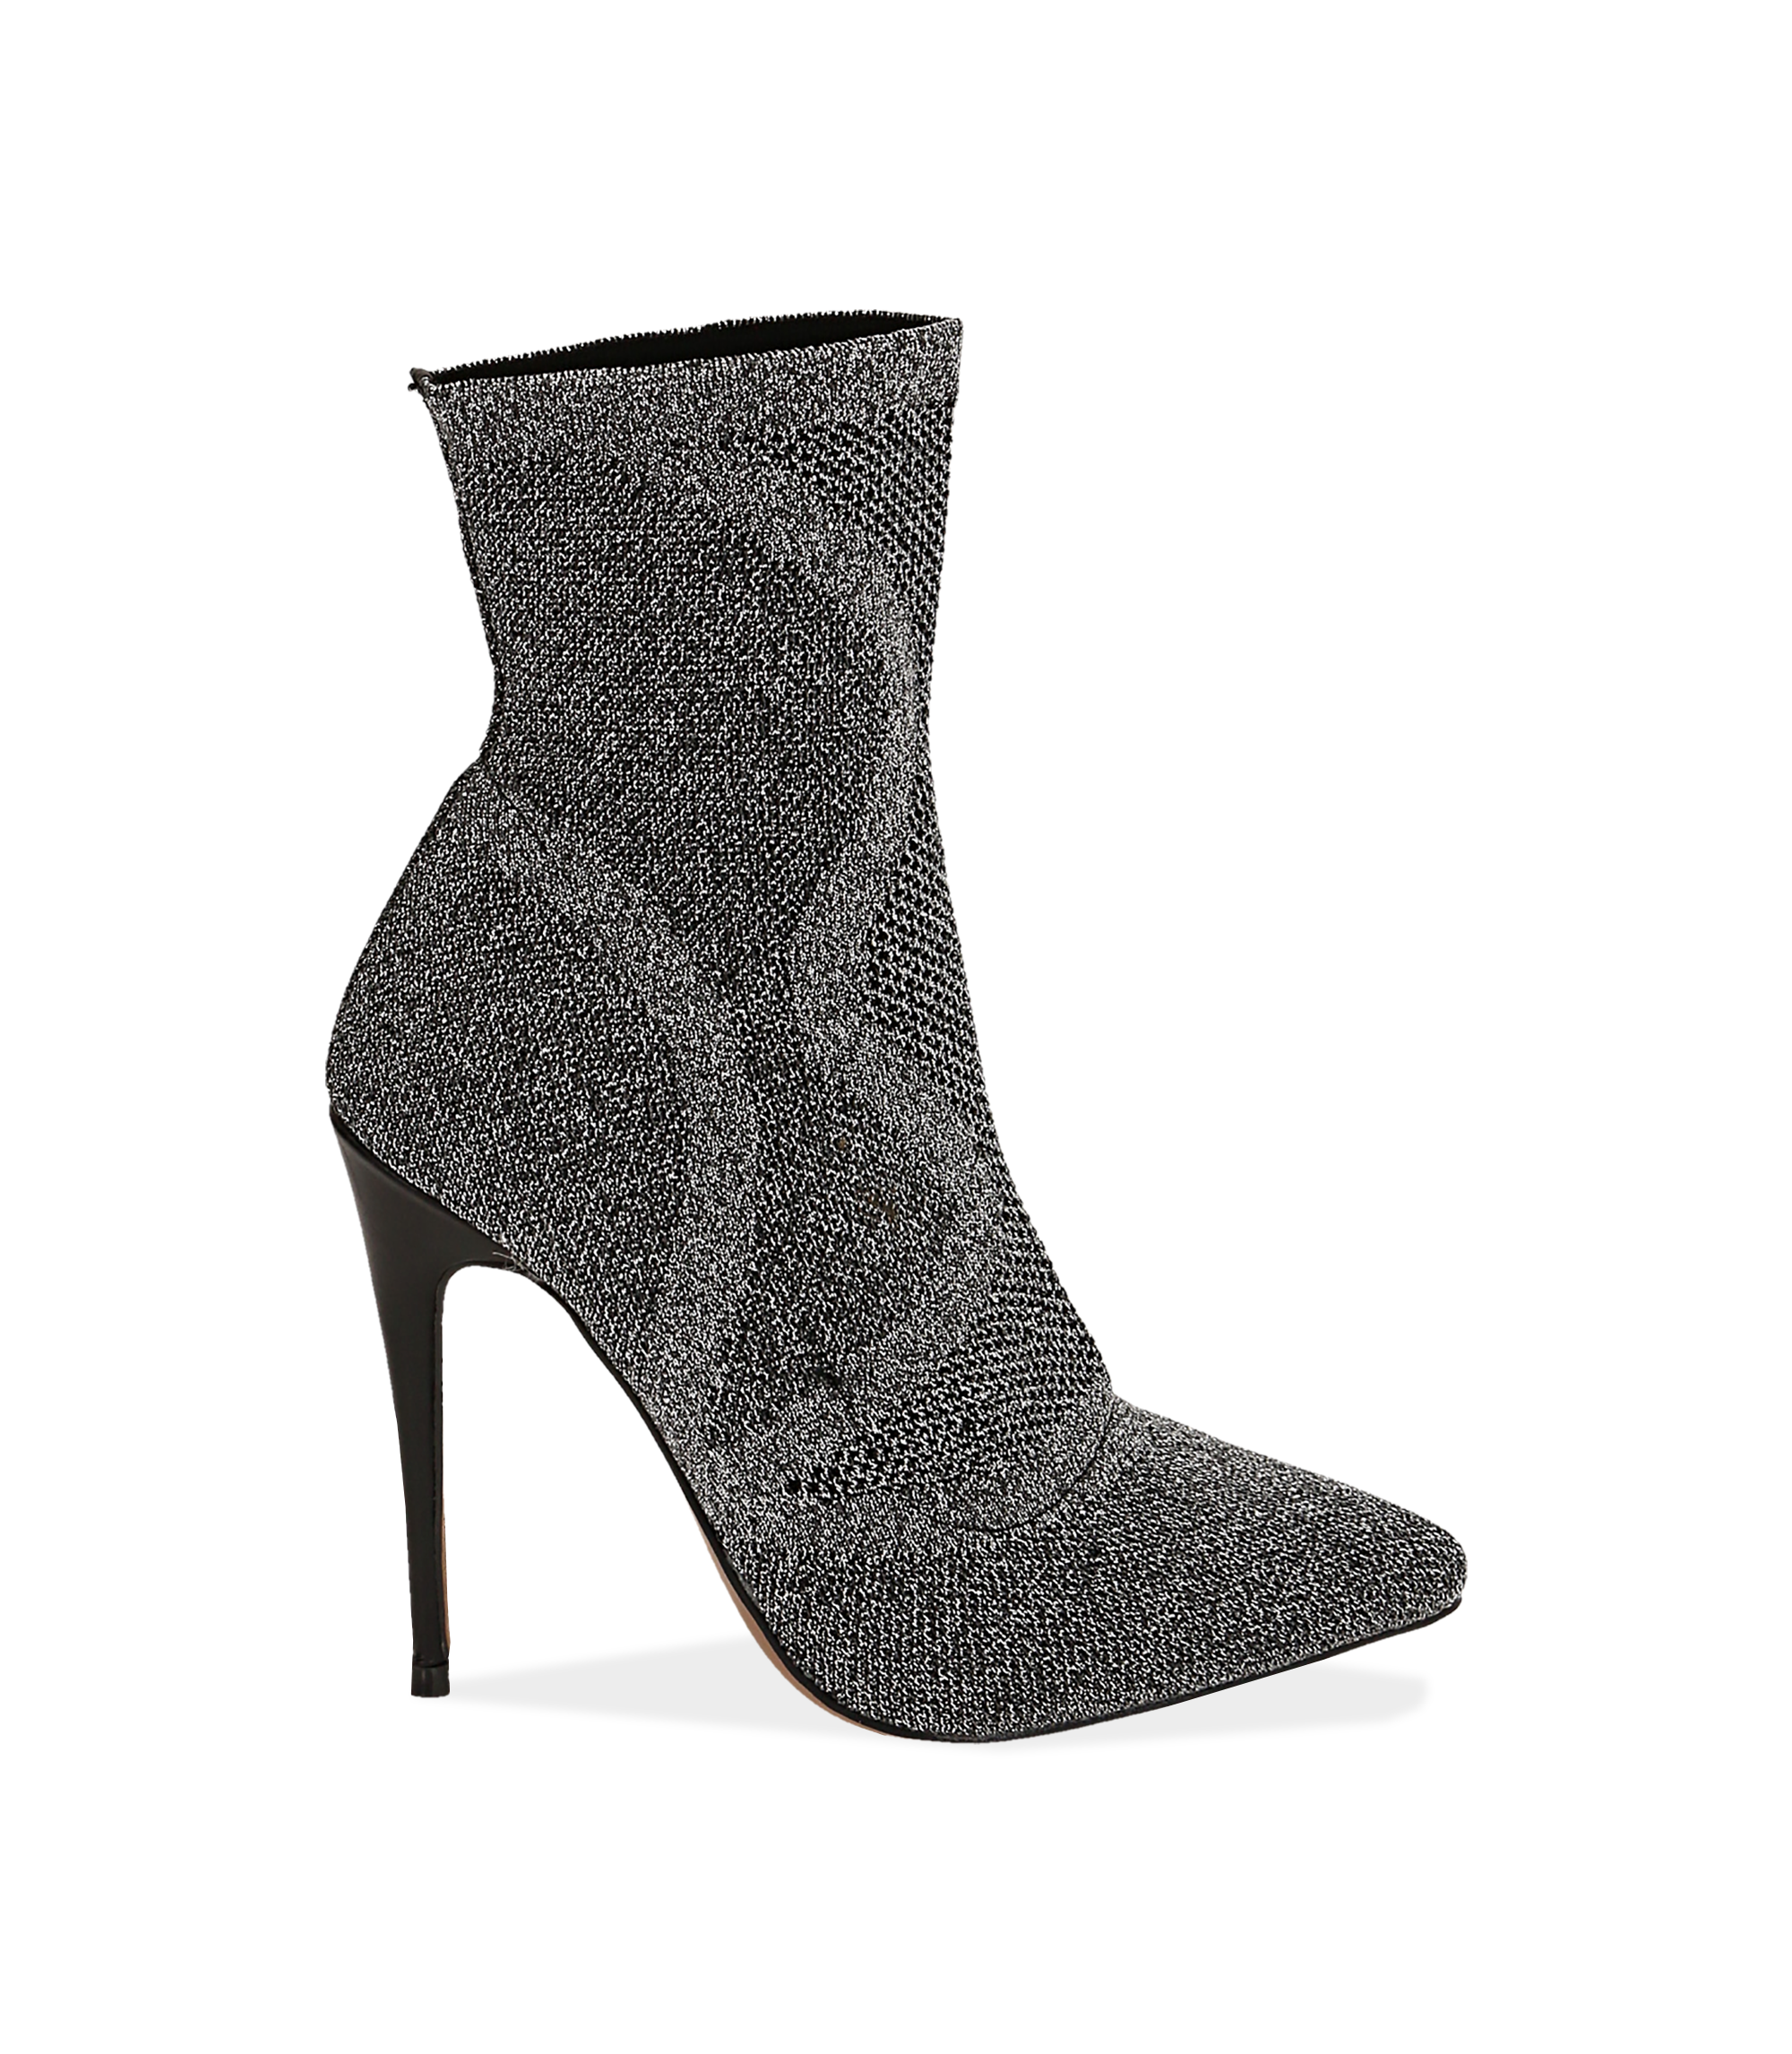 Ankle boots argento in tessuto elastico